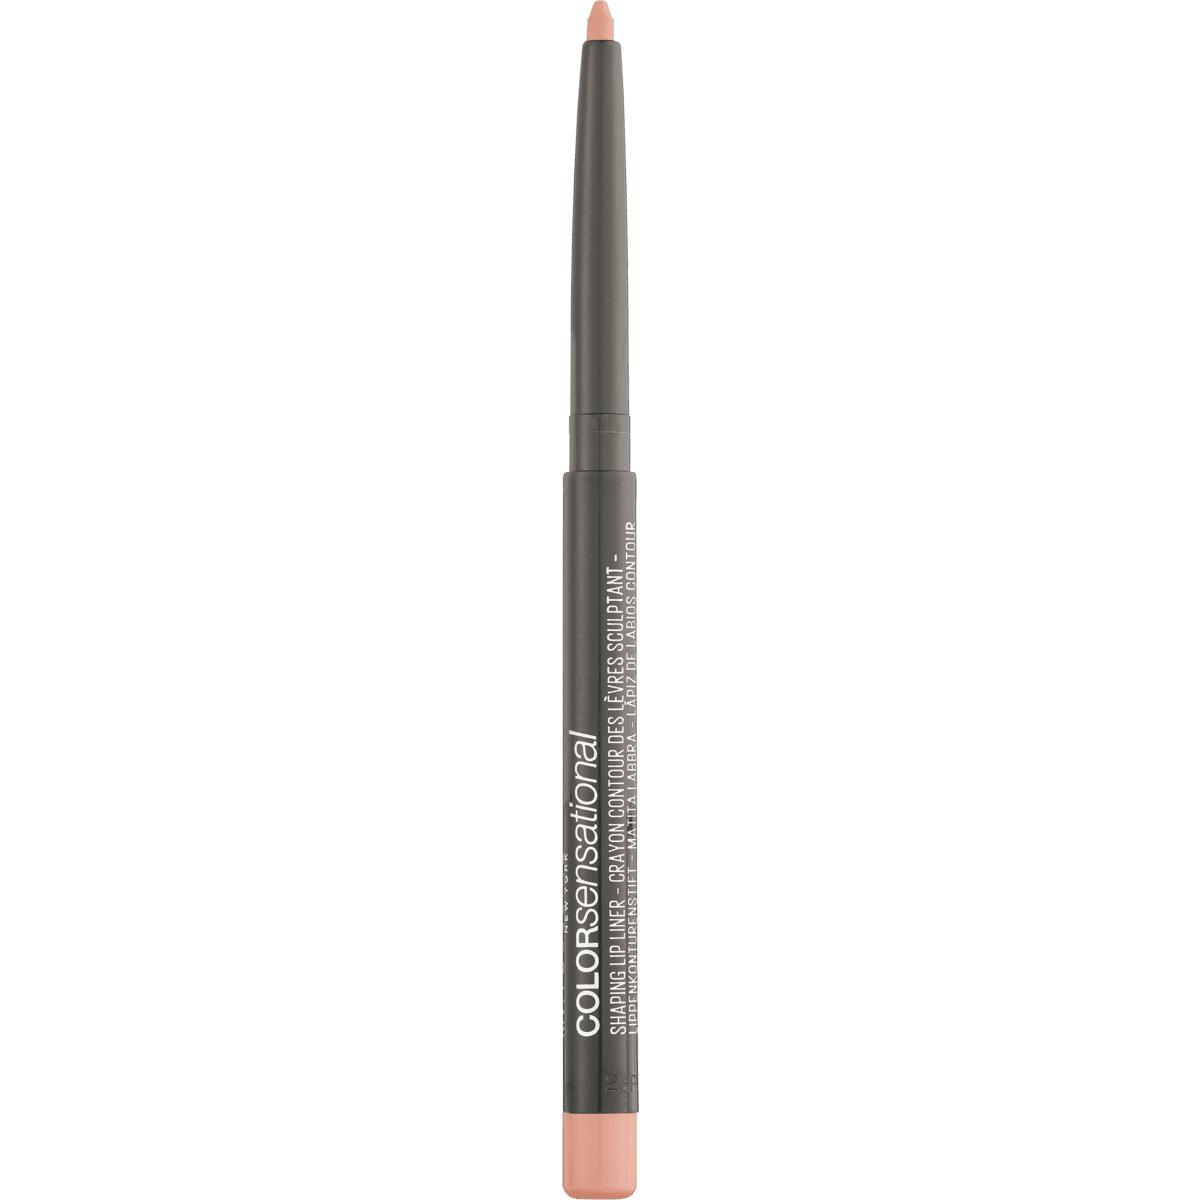 Maybelline CS SHAPING LIP LINER NU 10 Nude Whi Nude Whispe